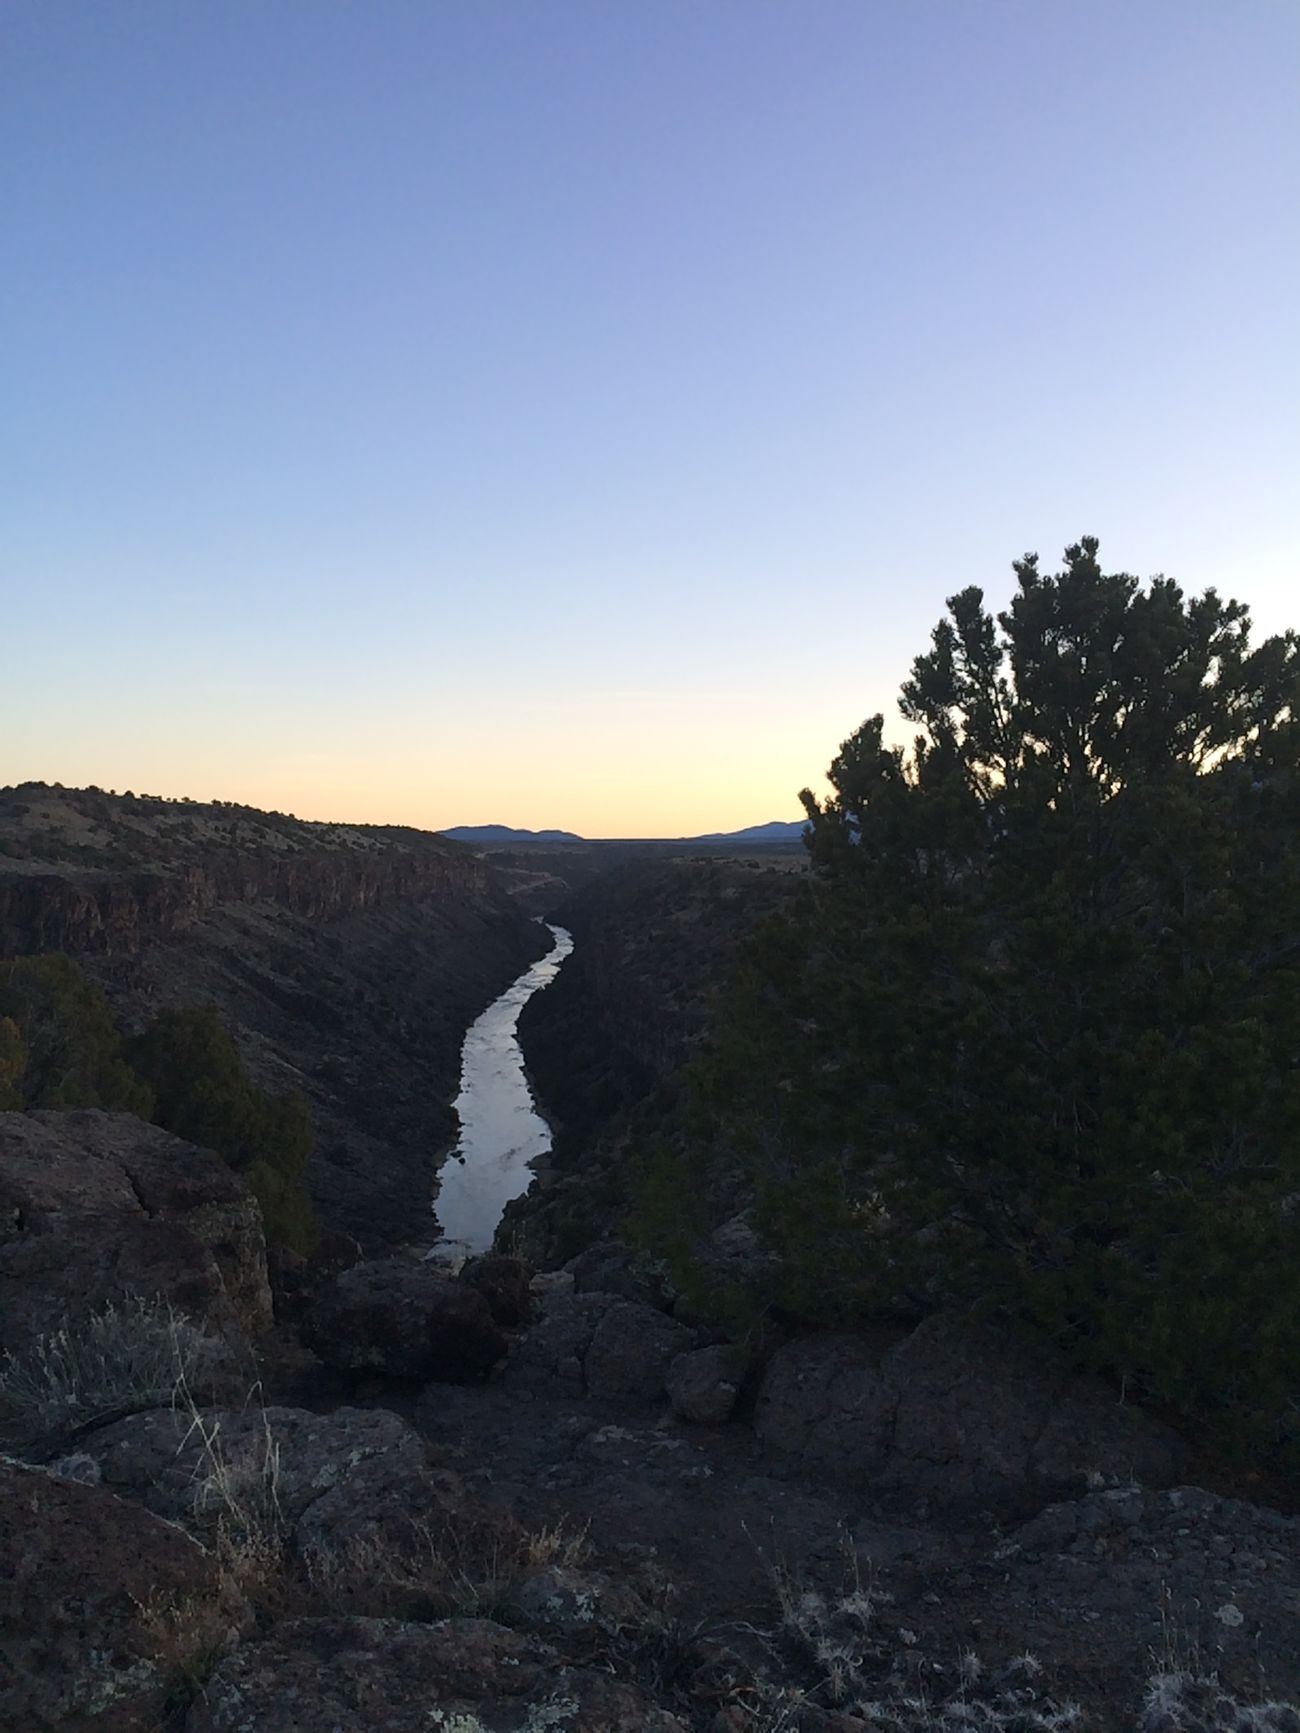 Morning Morning Camping gorge rio grande Río Grande river New Mexico